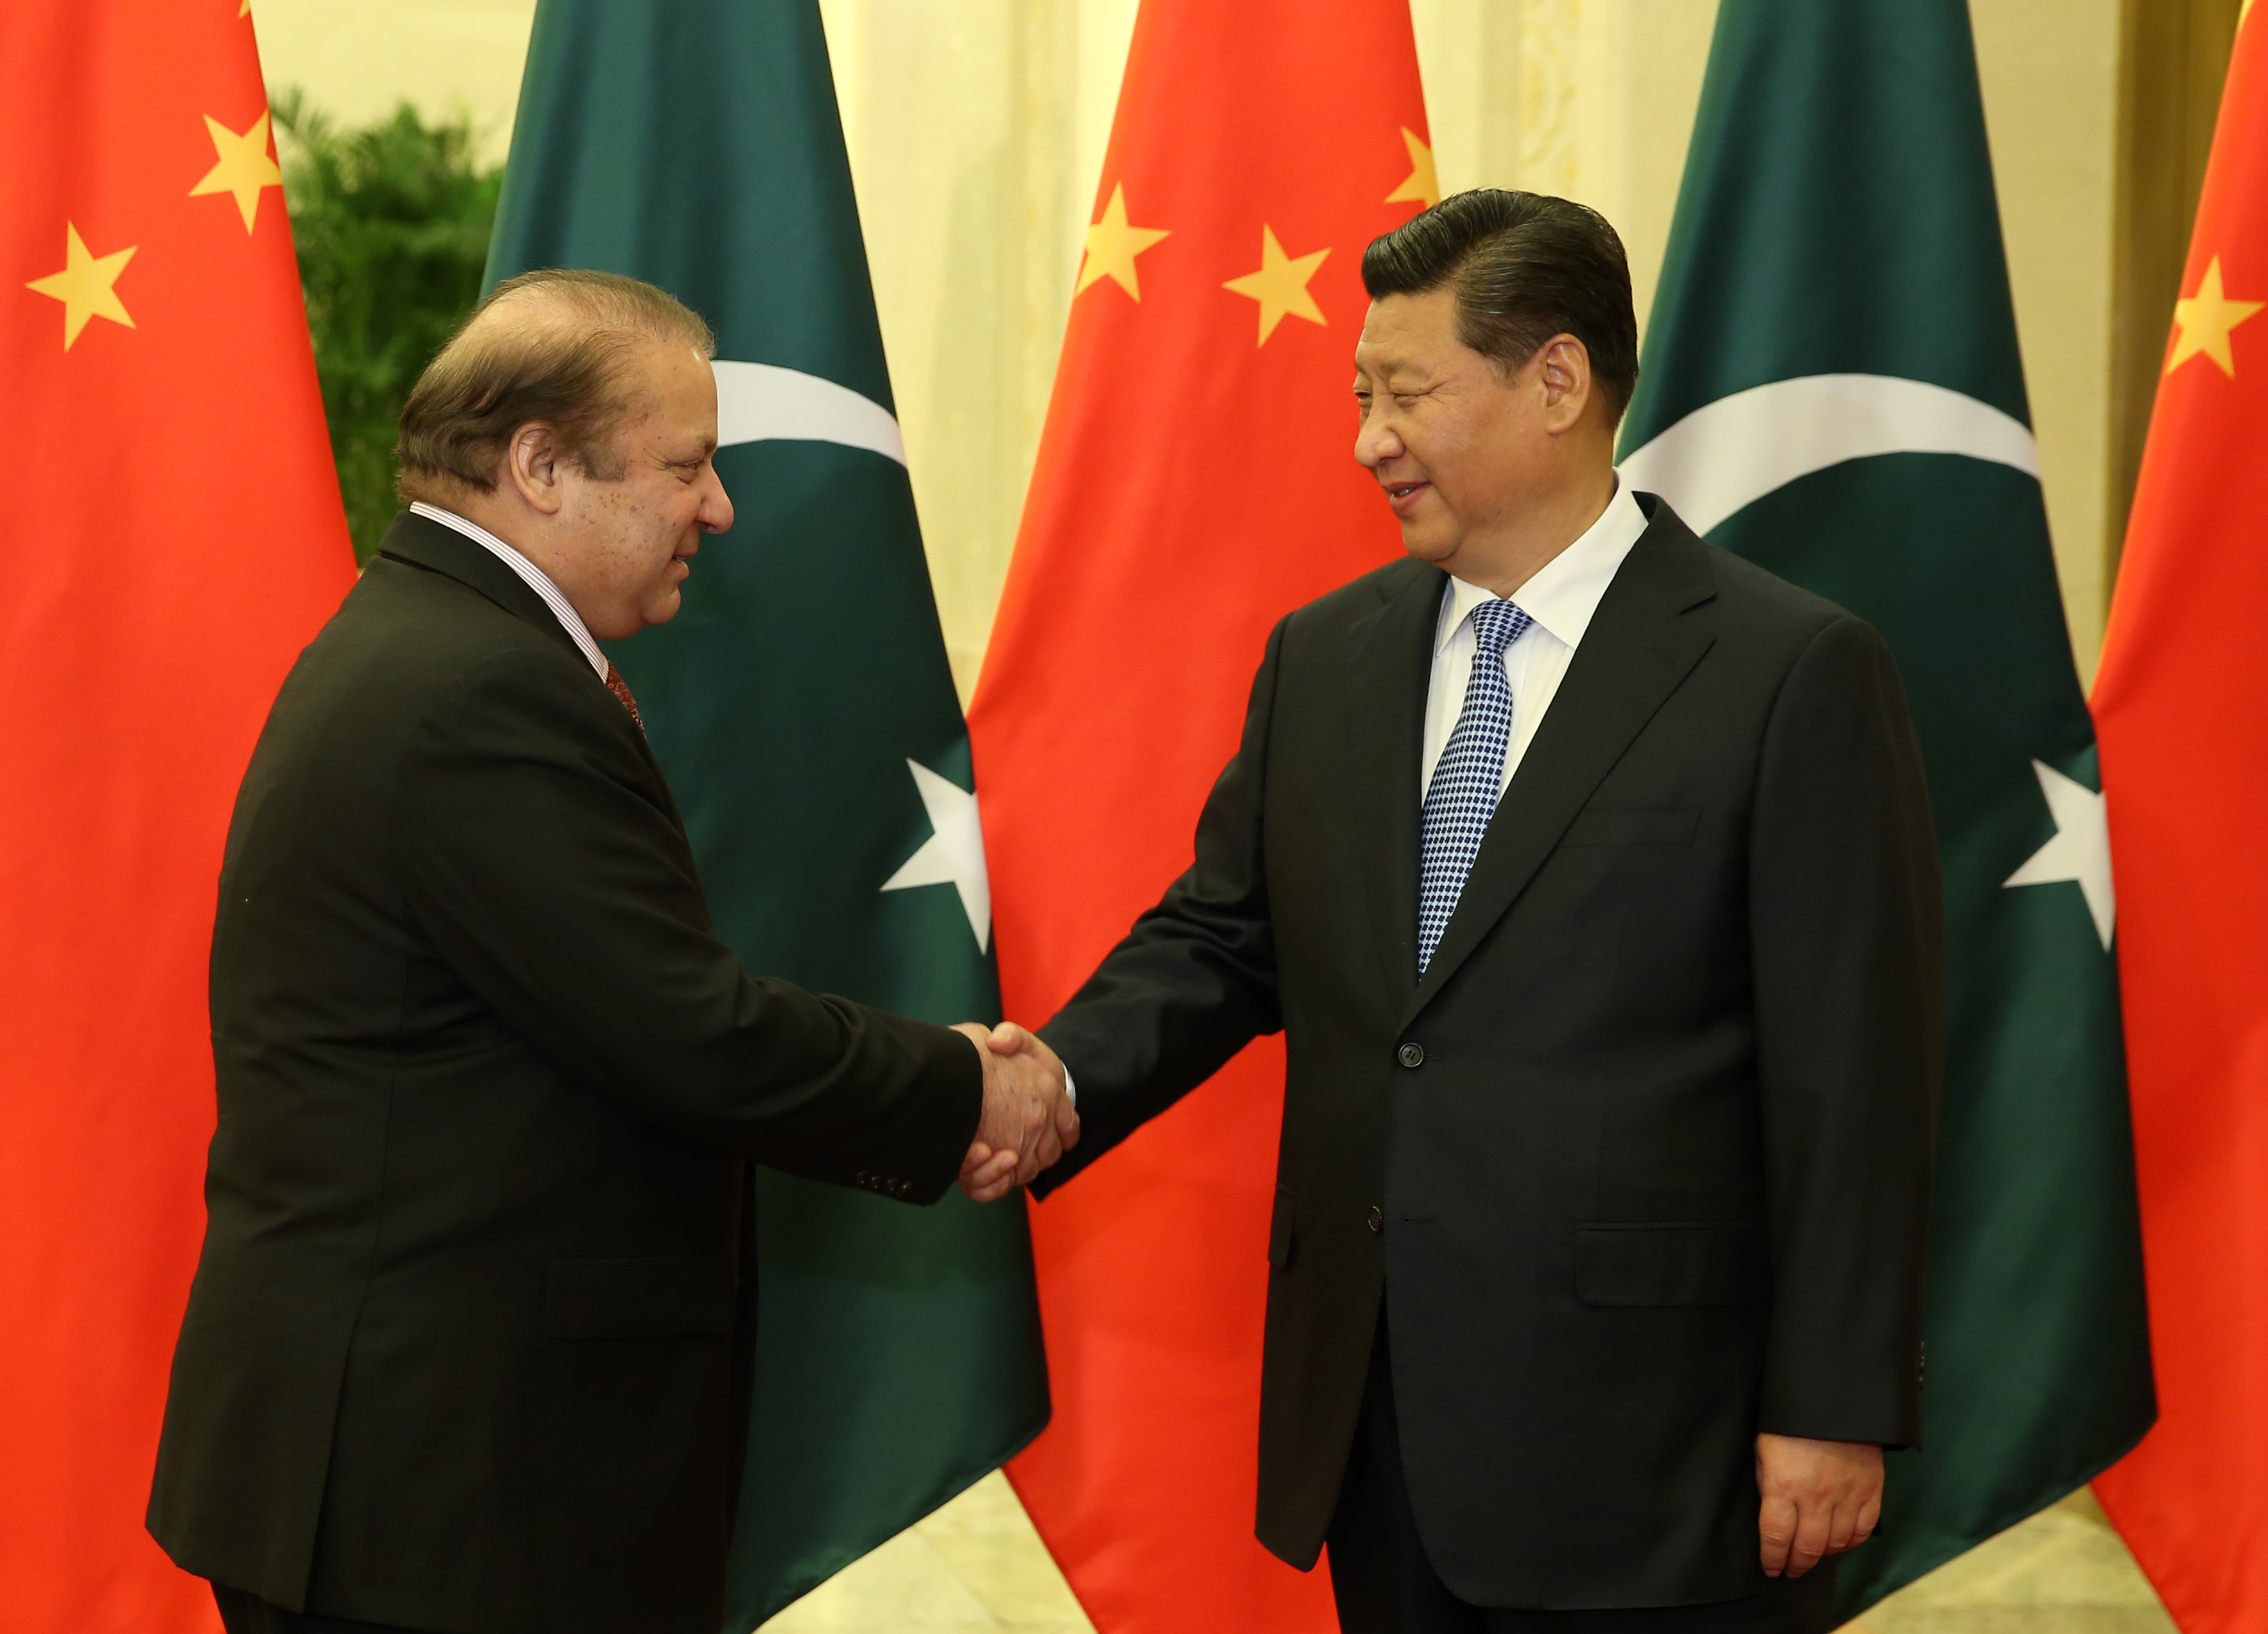 Planning and Development Ministry says Pakistan expects to sign over $4 billion in govt- to-govt infrastructure deals. PHOTO COURTESY: SOUTH ASIAN DAILY